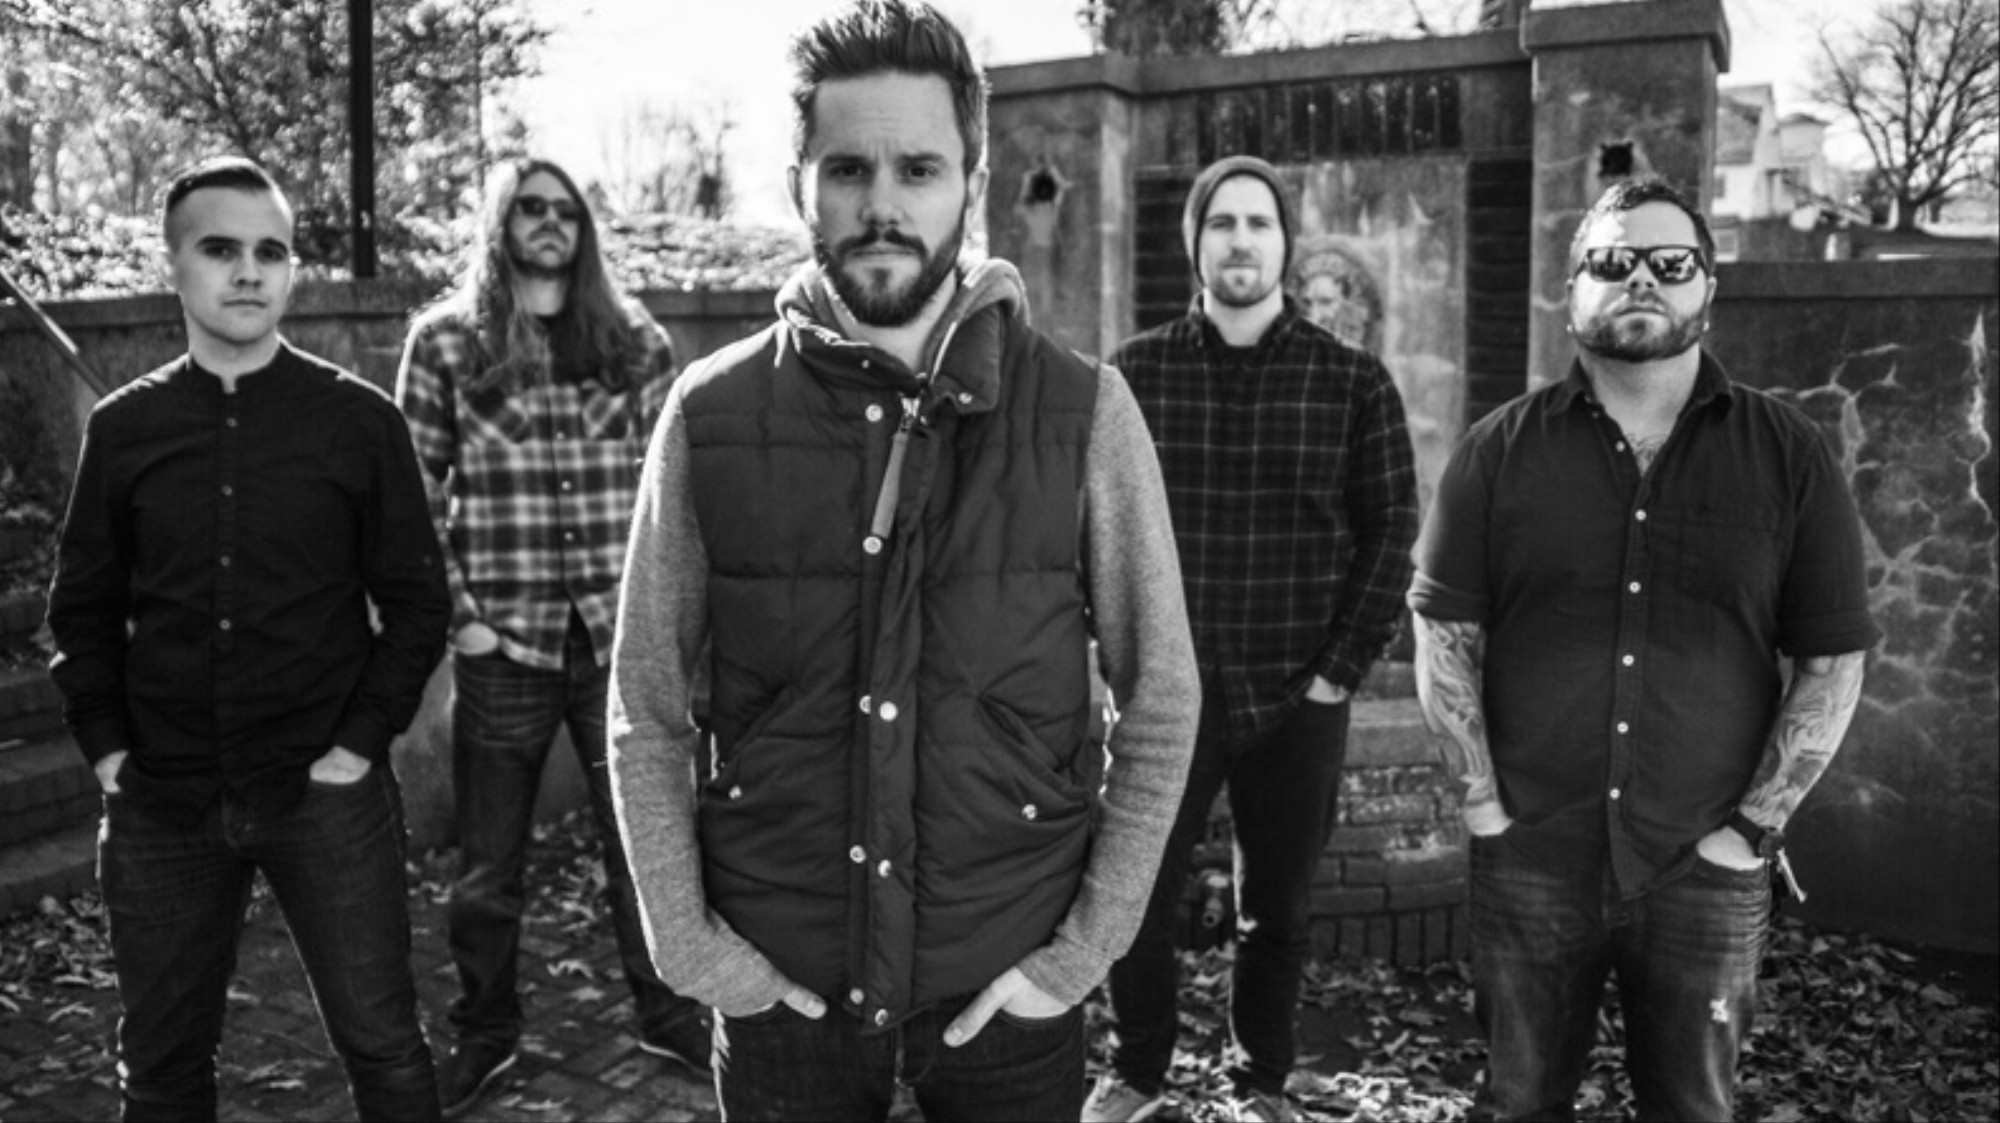 Rank Your Records: Between The Buried And Me's Paul Waggoner